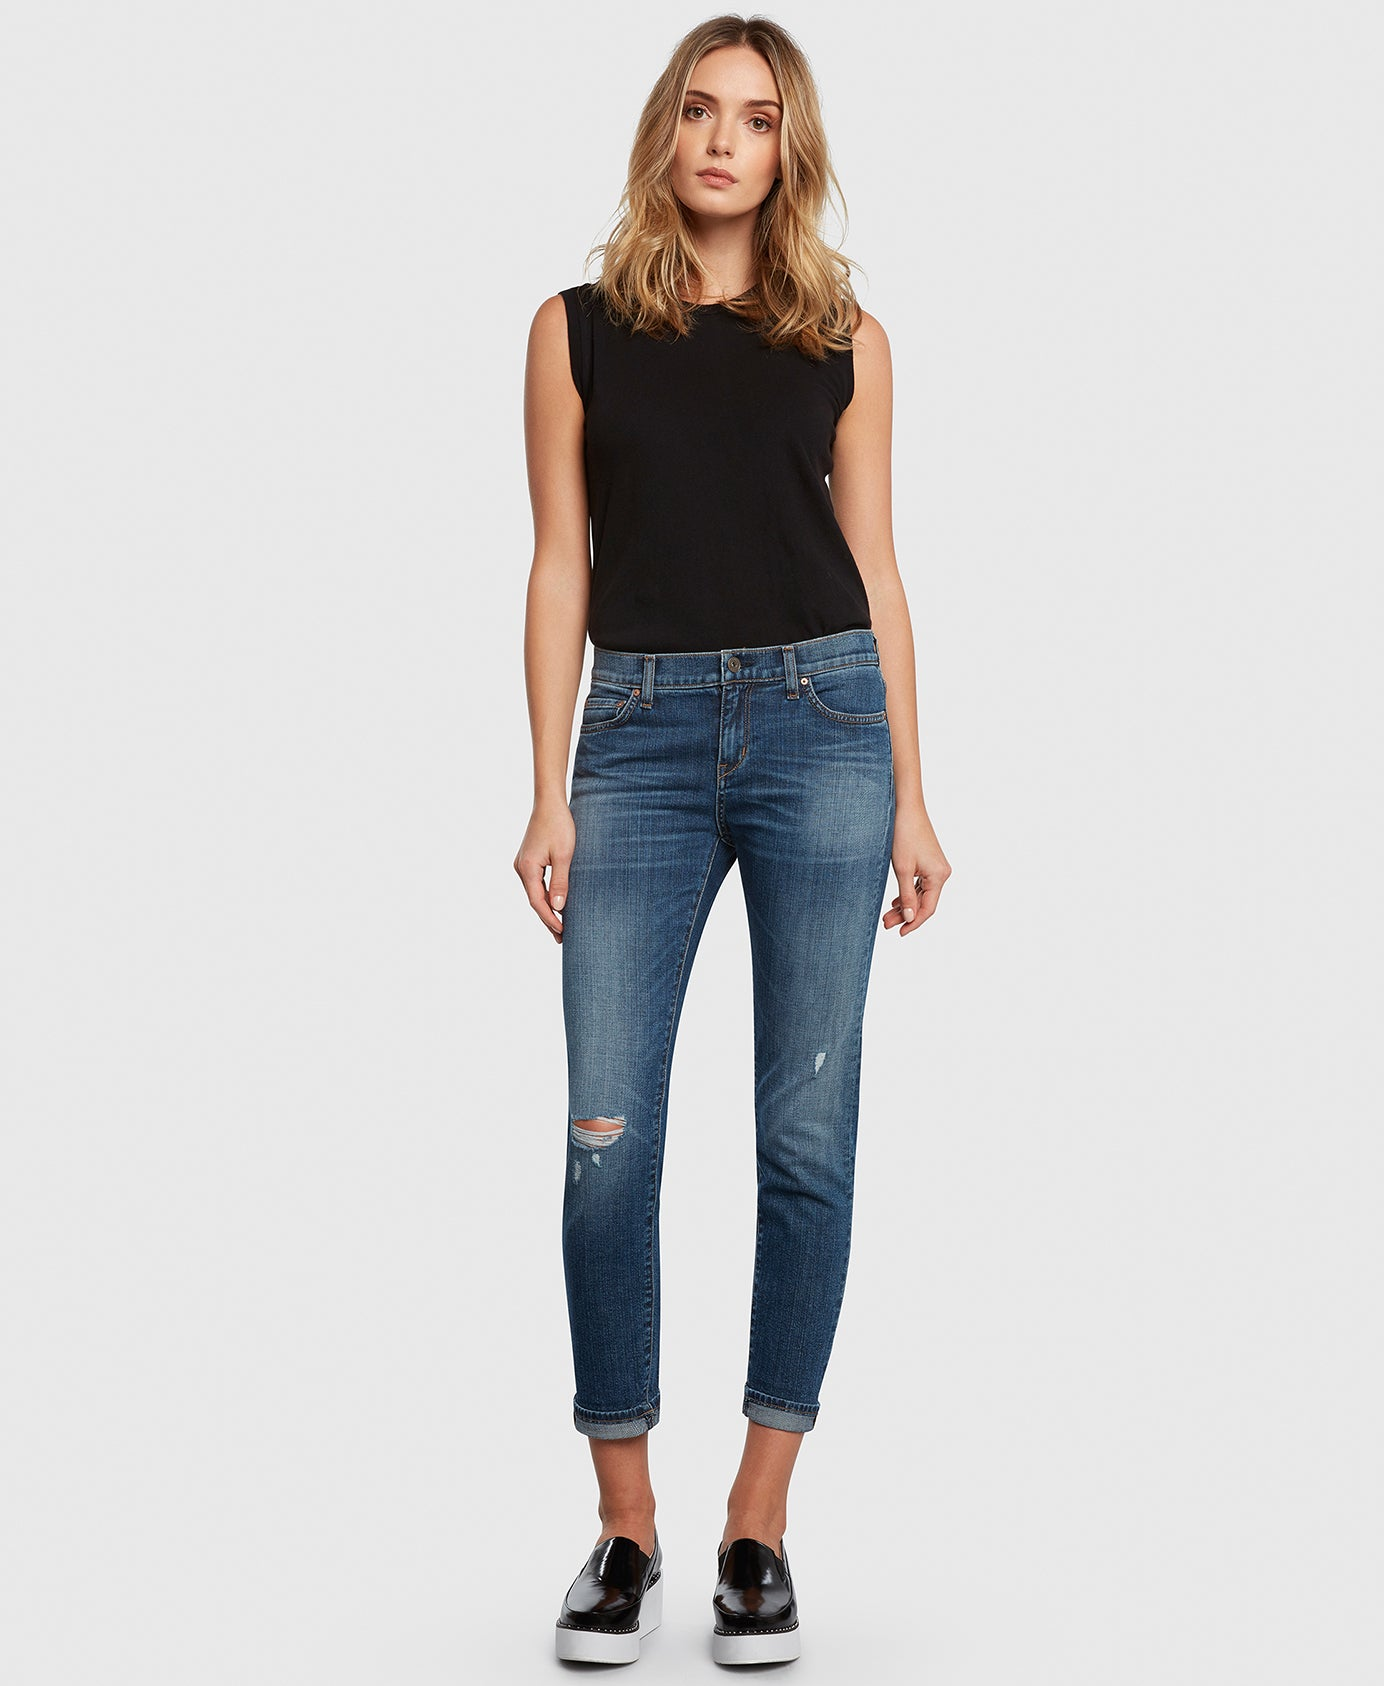 Principle FAVORITE in Movin' On boyfriend jeans